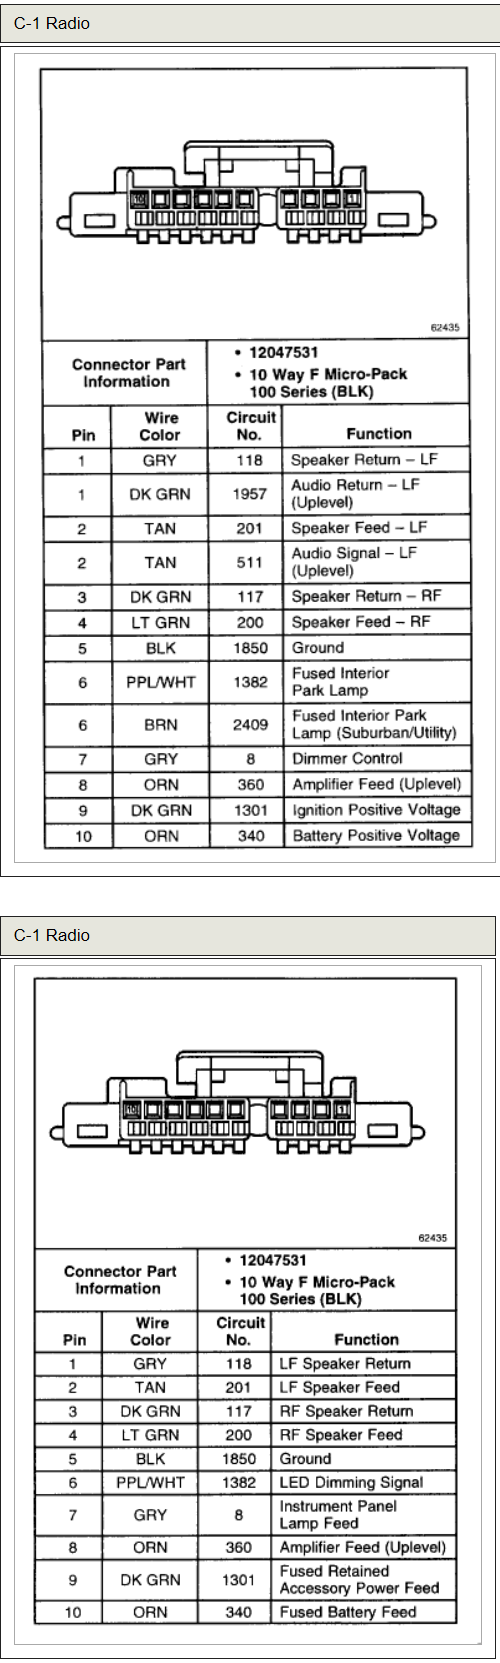 Chevrolet Tahoe LS 2000 stereo wiring connector 2 chevrolet car radio stereo audio wiring diagram autoradio 2000 Chevy Silverado Wiring Diagram at aneh.co